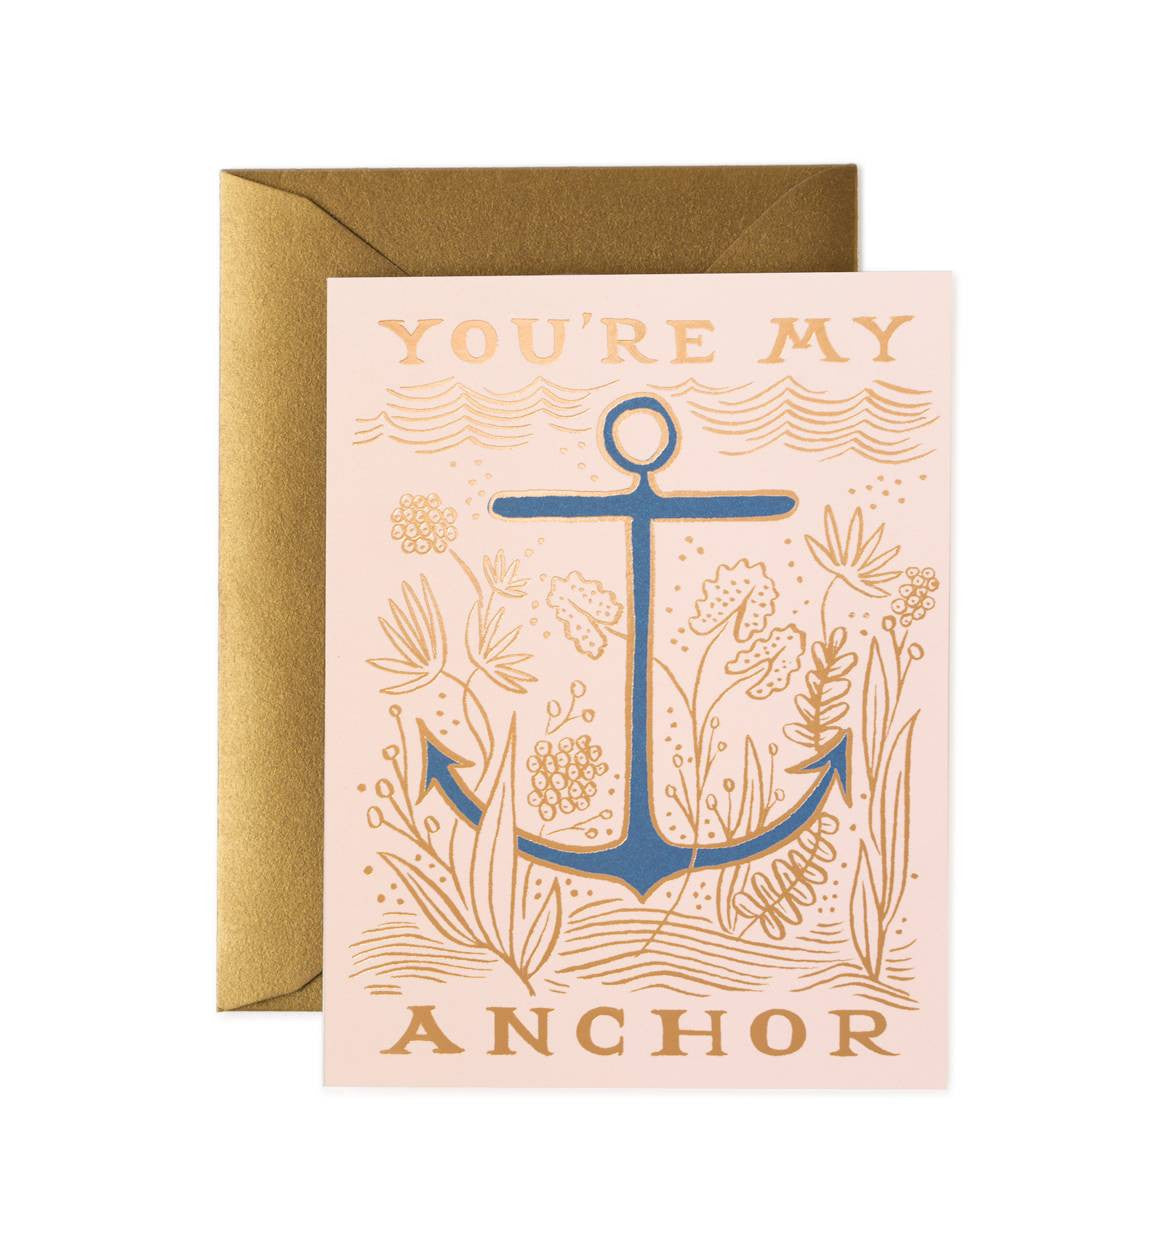 My Anchor Single Greeting Card